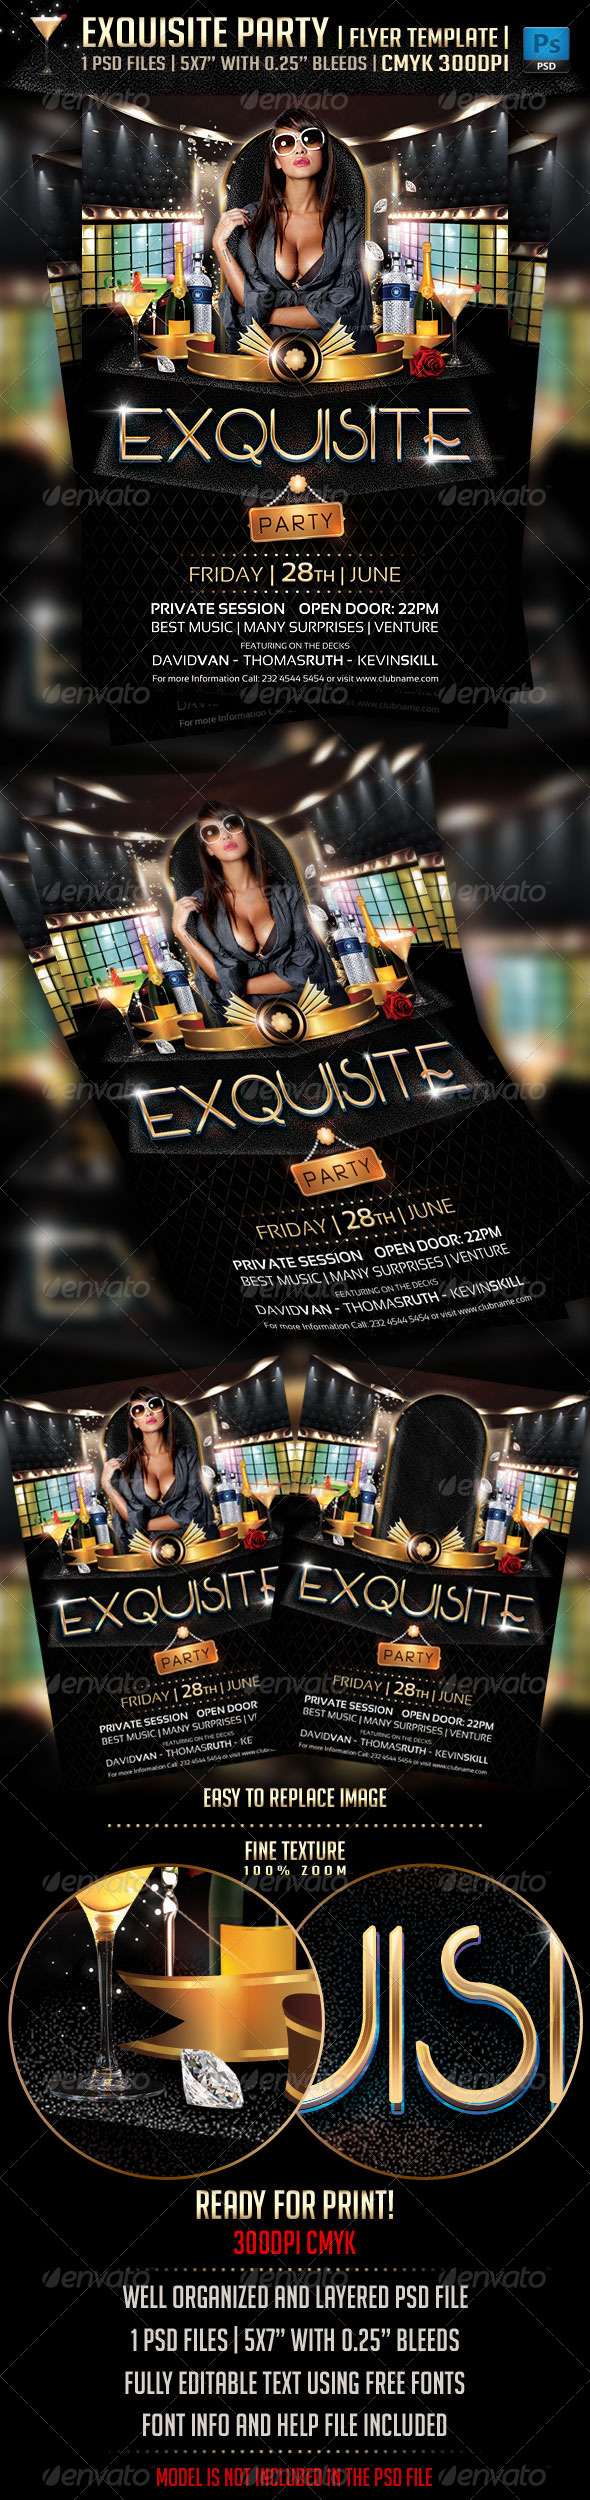 Exquisite Party Flyer Template - Flyers Print Templates